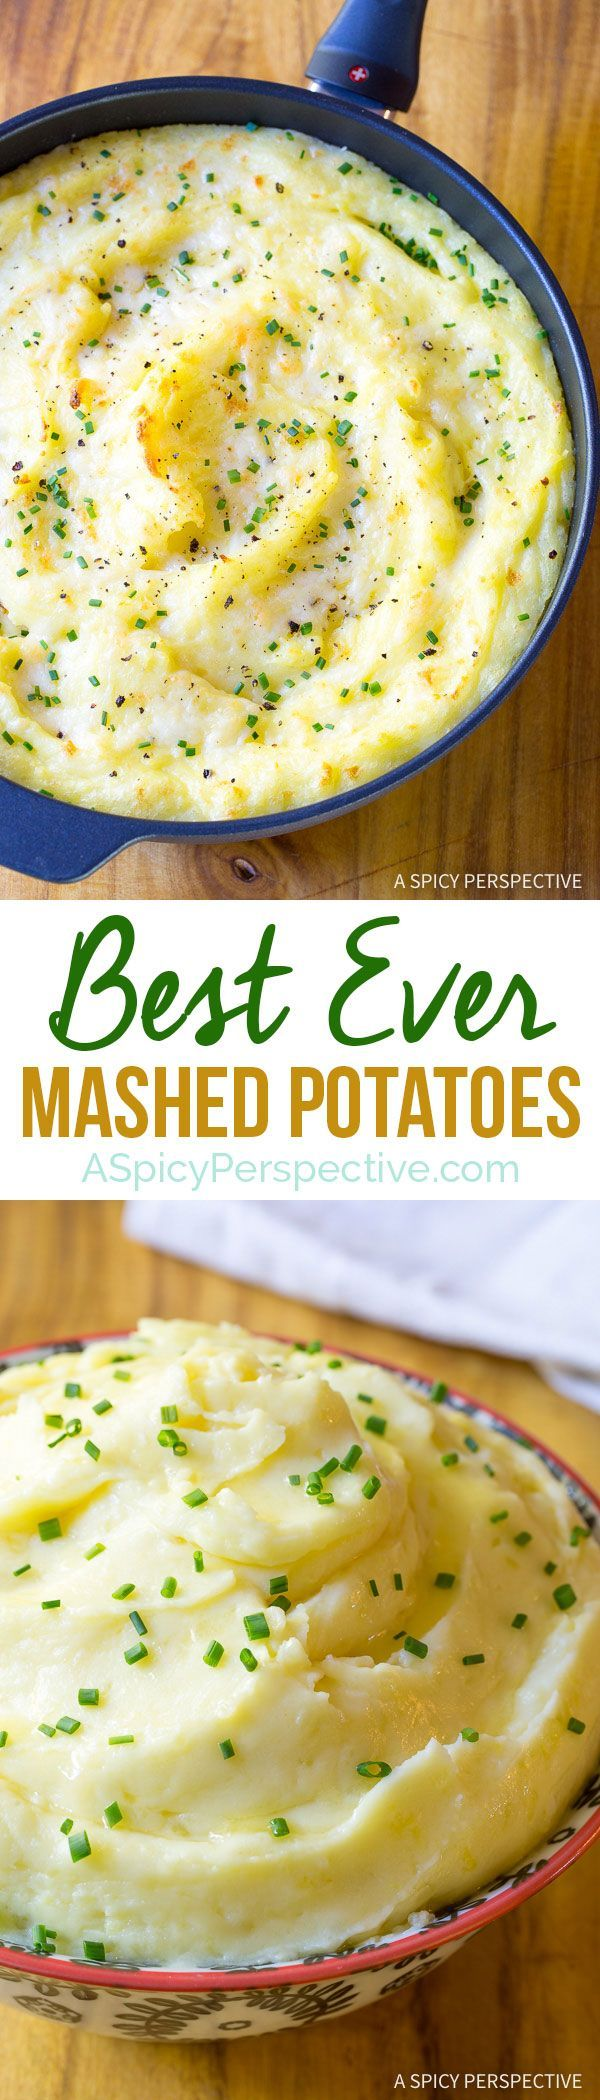 Our Very Best Mashed Potatoes Recipe on ASpicyPerspective.com via @spicyperspectiv